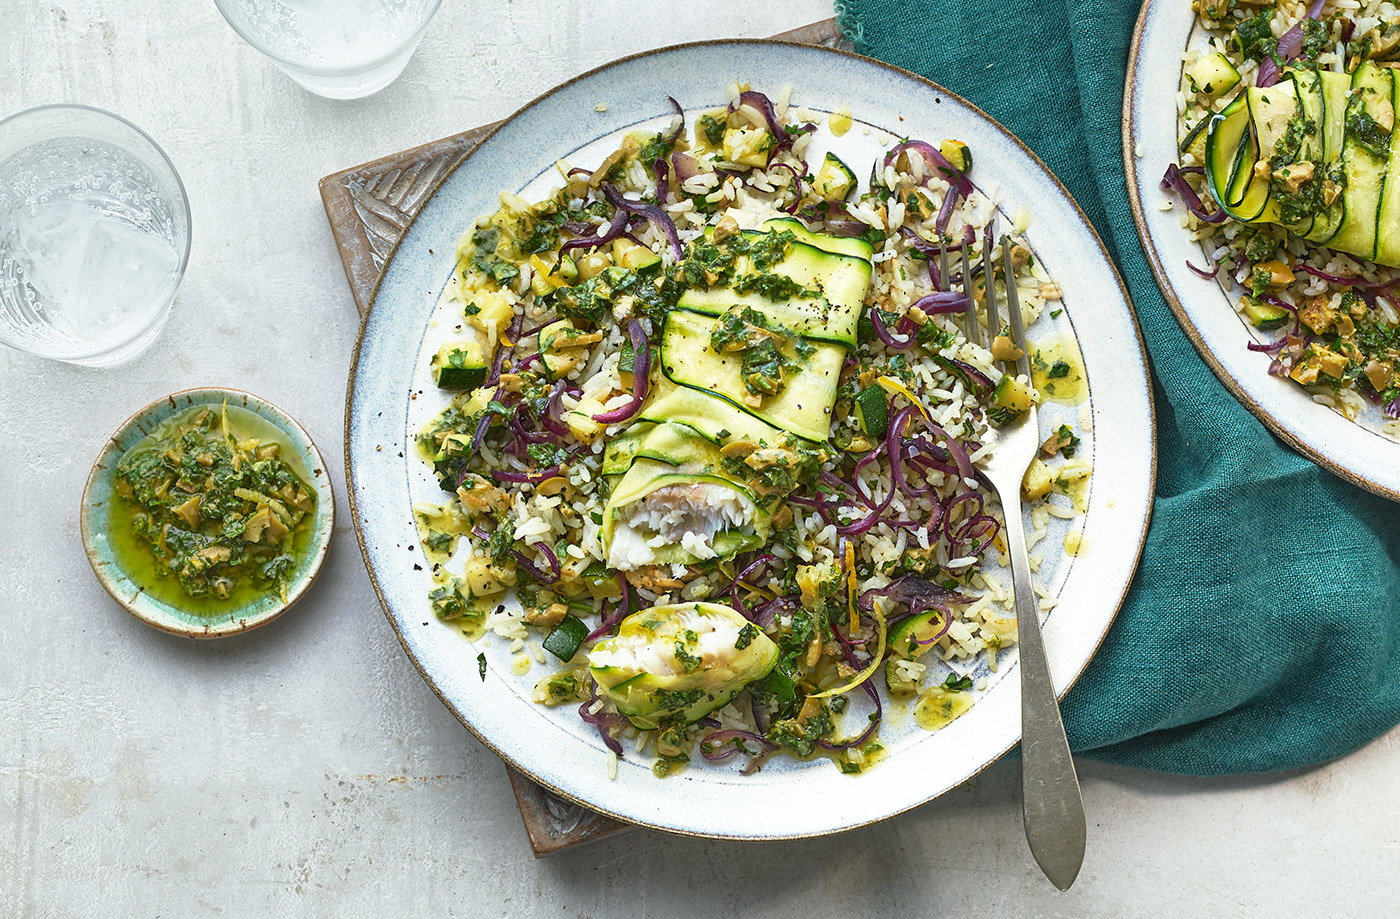 Courgette and fish pilaf recipe